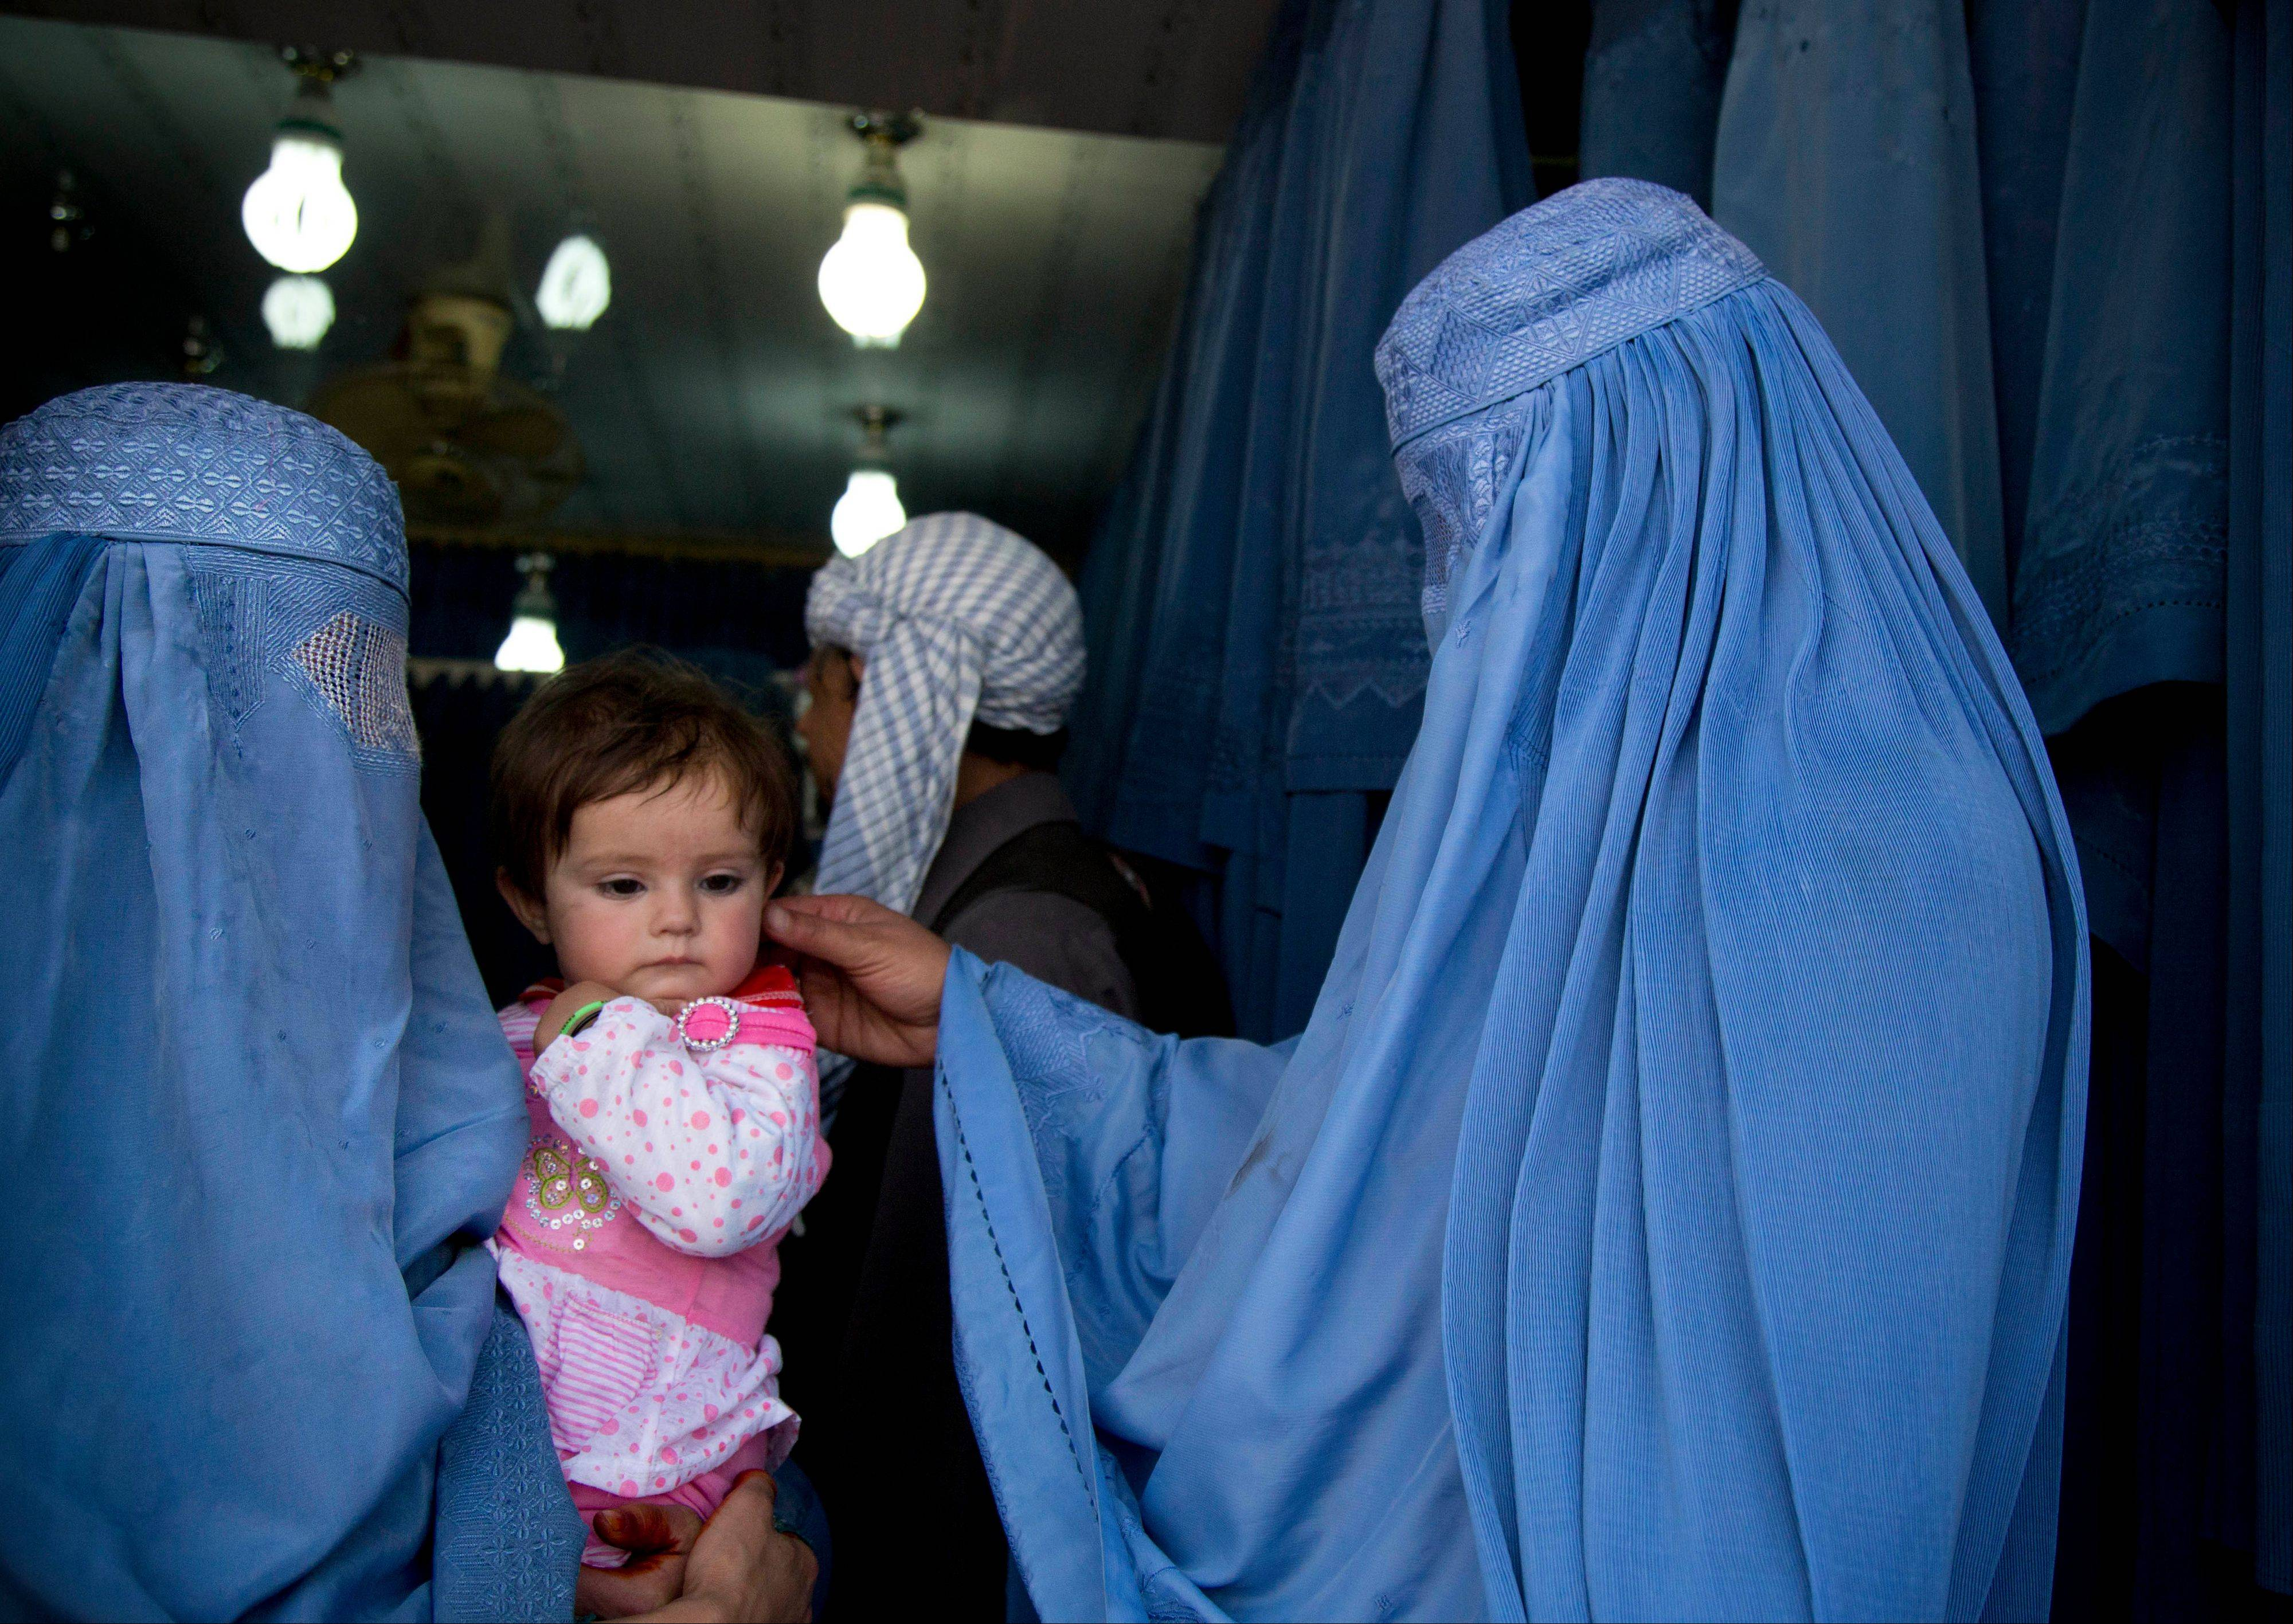 An Afghan woman comforts the child of her friend as both wait to get in line to try on a new burqa in a shop in the old town of Kabul, Afghanistan. Despite advances in women�s rights, Afghanistan remains a deeply conservative country and most women continue to wear the Burqa. But tradesmen say times are changing in Kabul at least, with demand for burqas declining as young women going to school and taking office jobs refuse to wear the cumbersome garments.